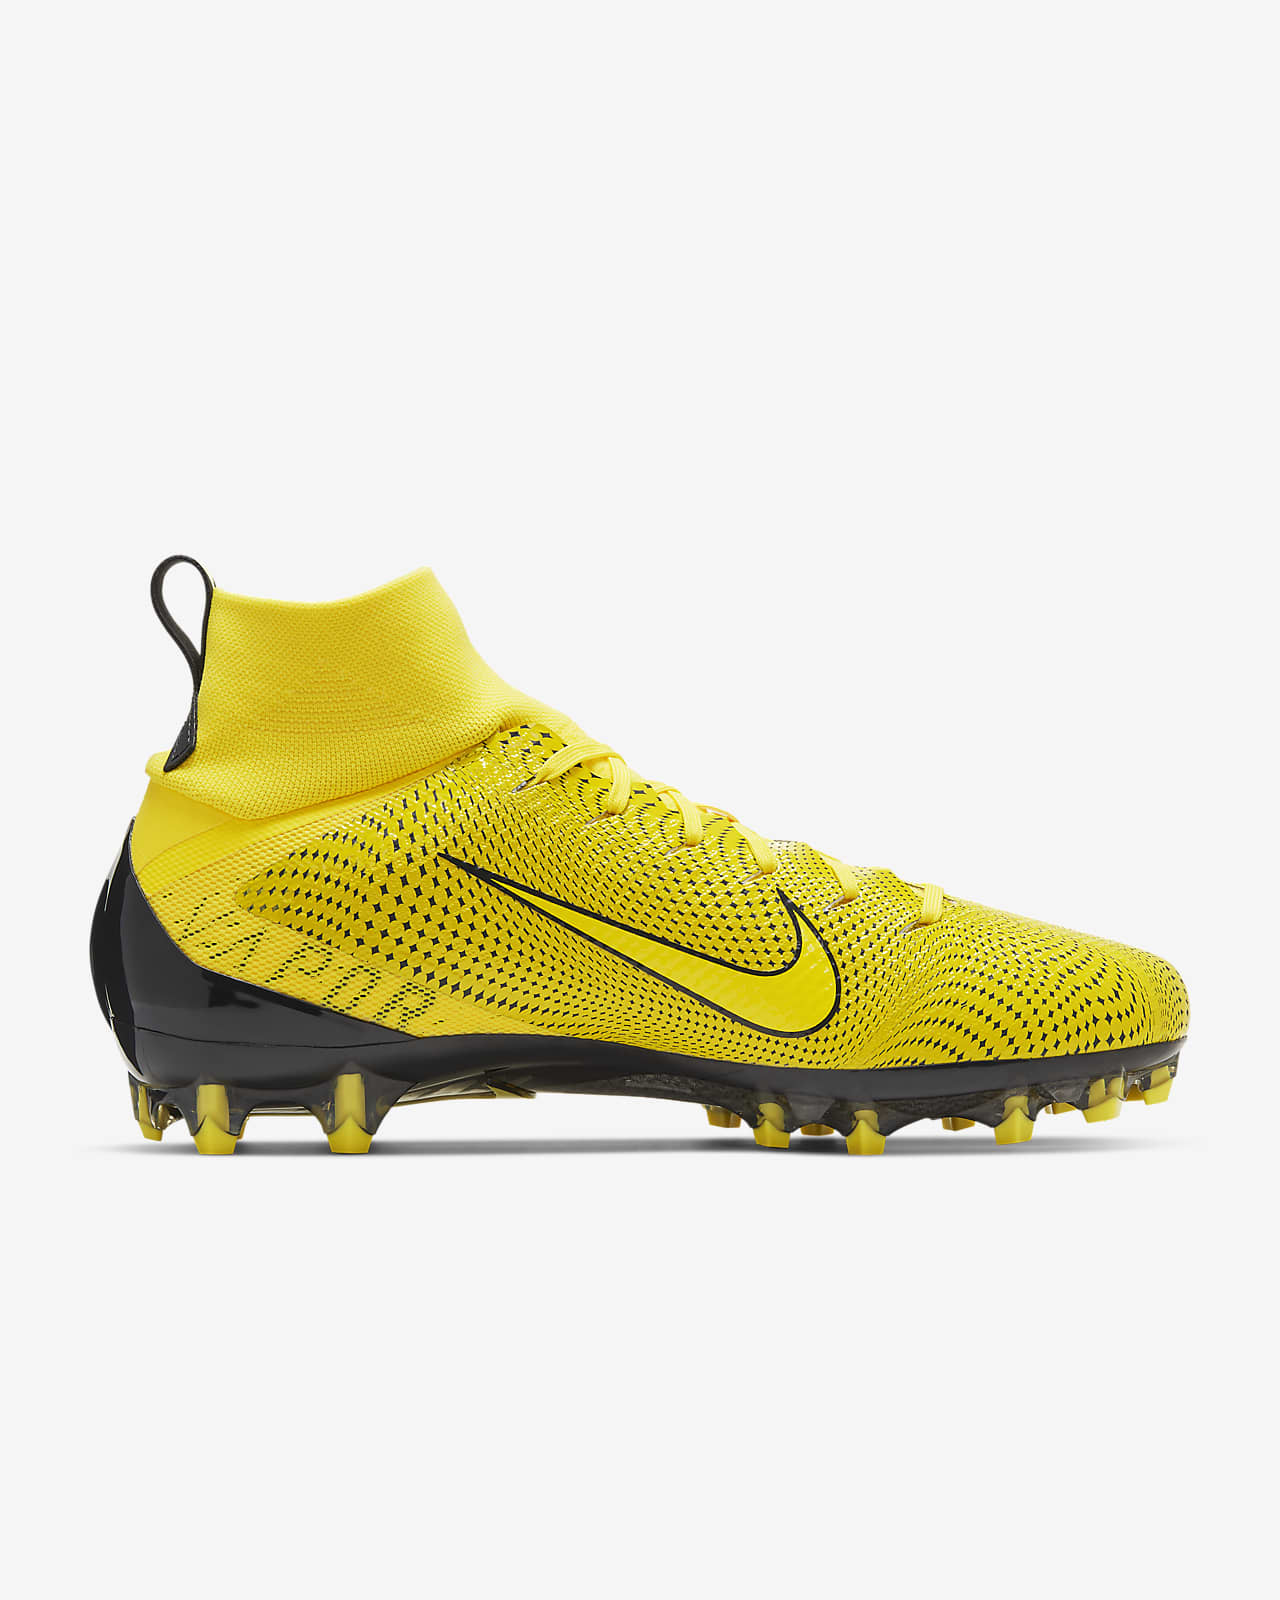 Nike Vapor Untouchable 3 Pro Football Cleat Nike Com